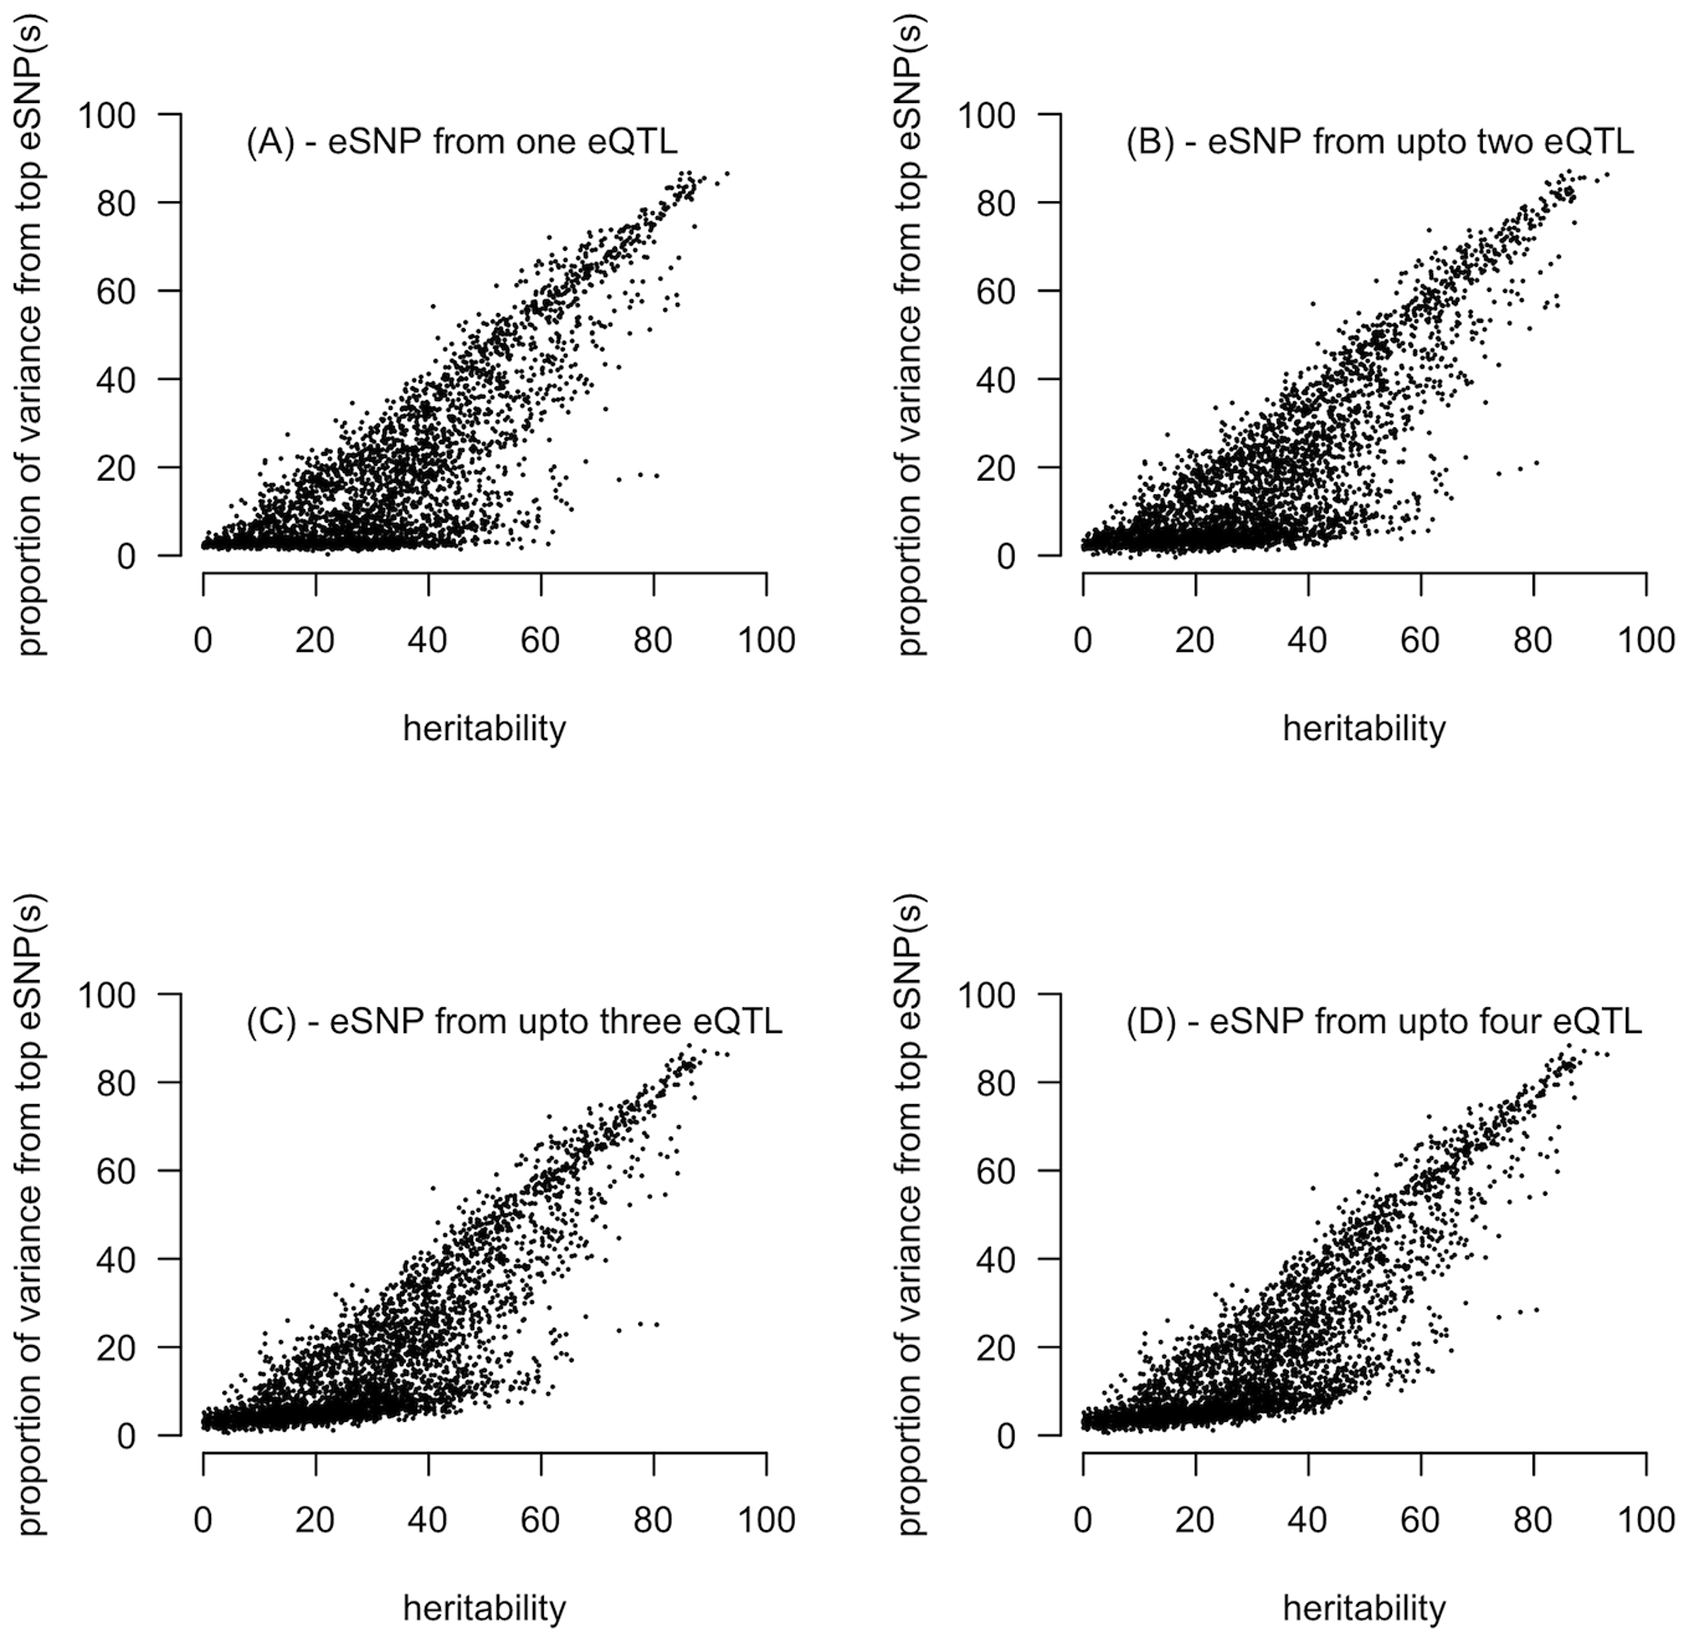 Relationship between narrow-sense heritability estimated from the pedigree against the proportion of variance explained by the top (smallest <i>P</i>-) eSNP(s) identified from the additive model eQTL analysis on unrelated individuals.